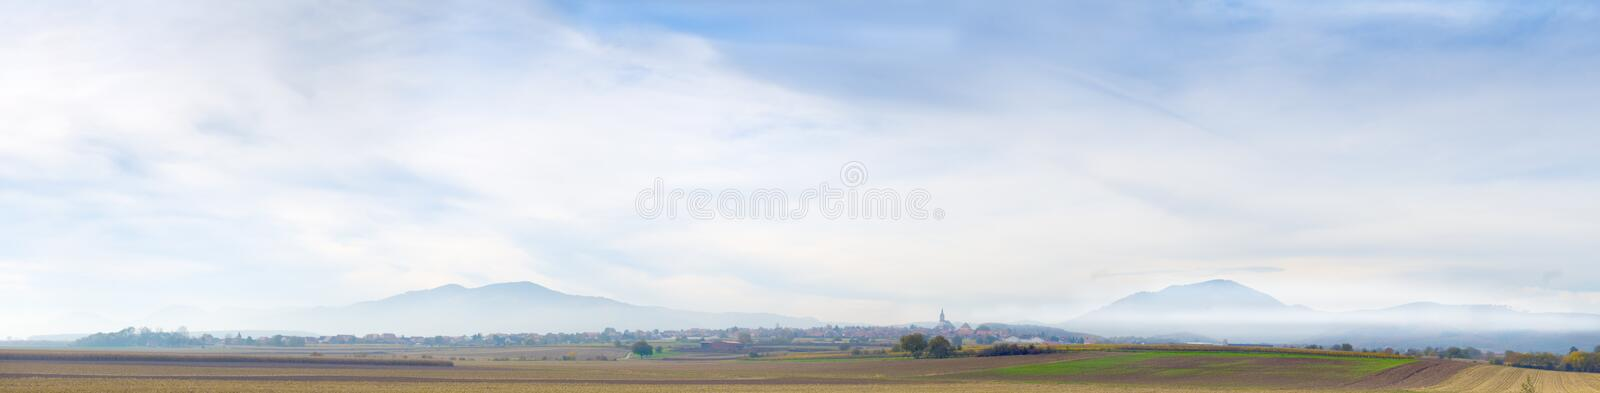 Distant mountains in brume. Landscape in Alsace, France royalty free stock photos